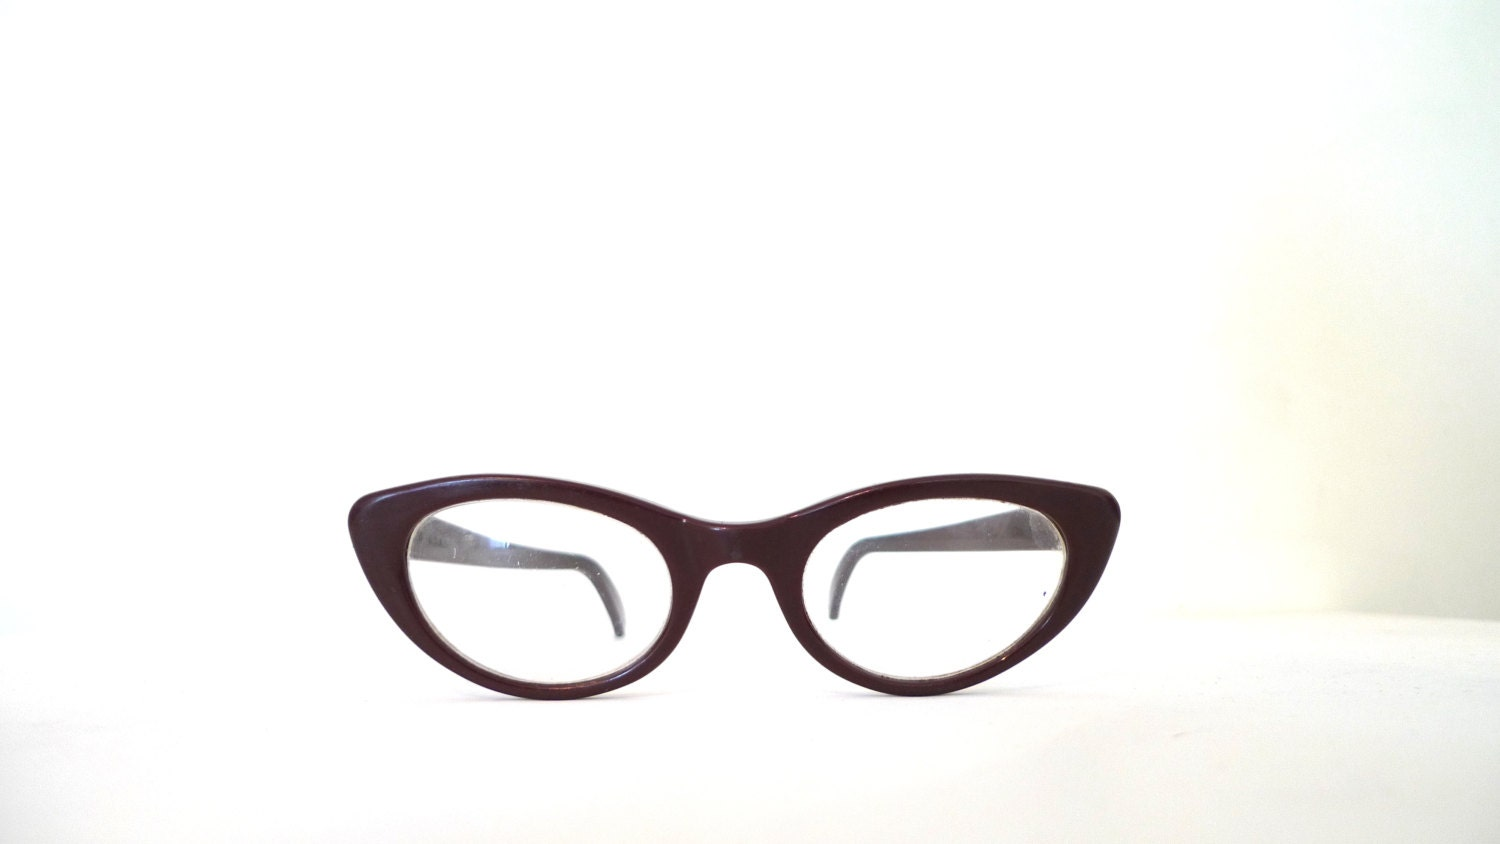 Eyeglass Frame Usa : Cat Eye Glasses Frame USA 46mm lens 20mm bridge 5.5 Inch 1950s